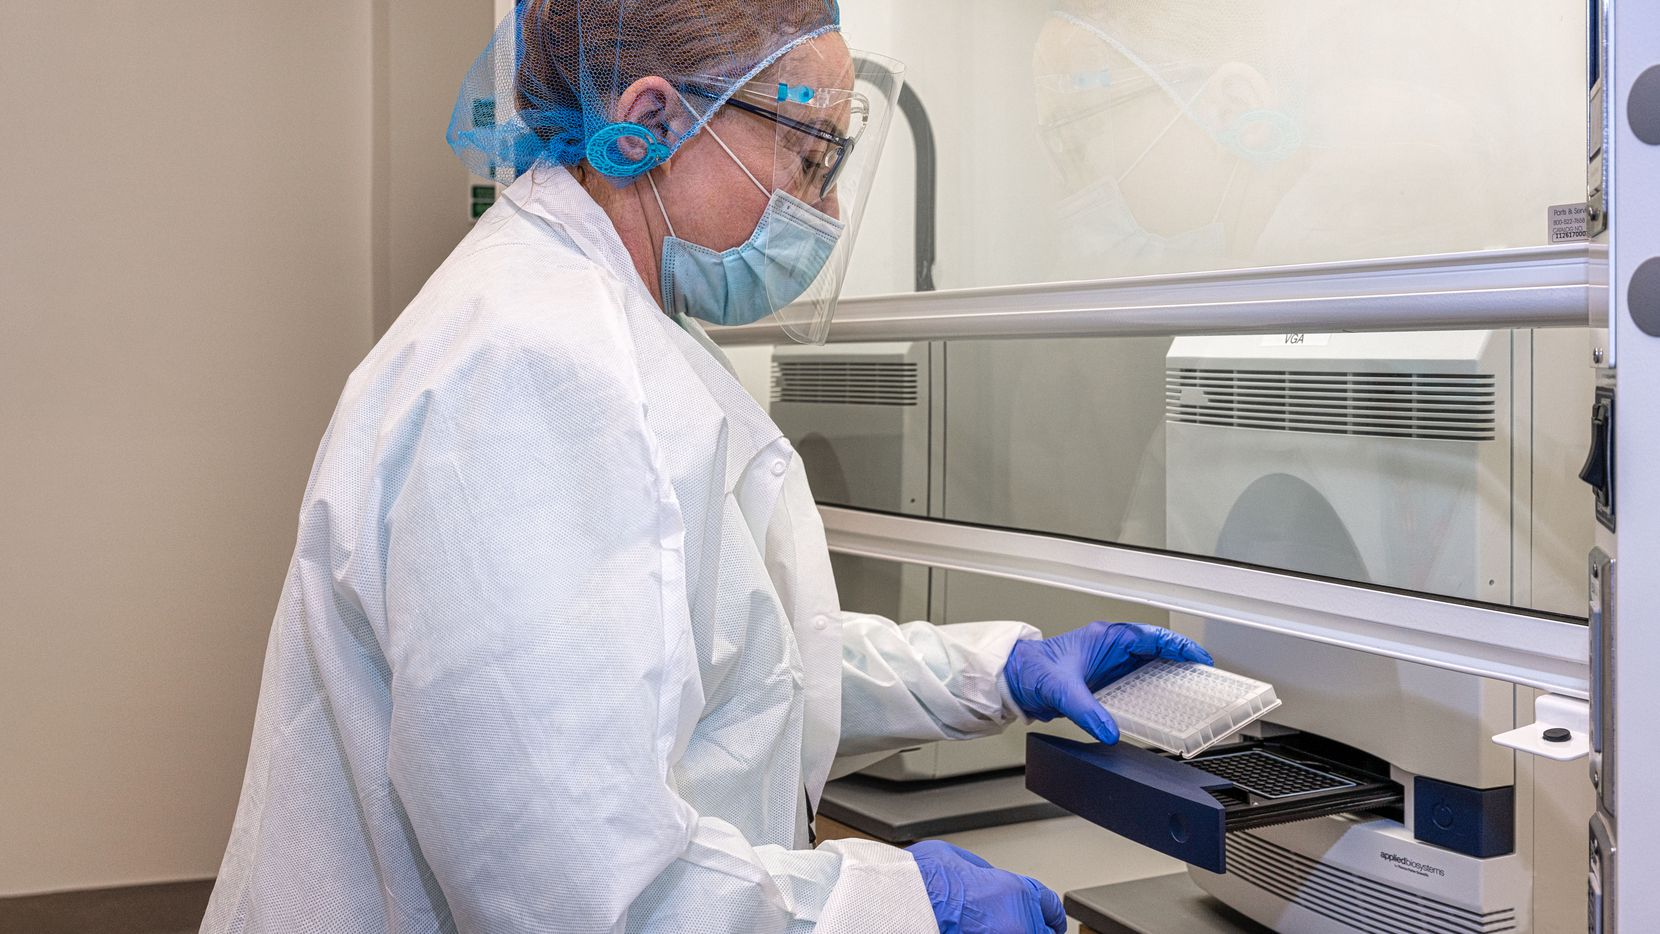 Dr. Florence Haseltine helps set up UT-Arlington's COVID-19 test facility at the North Texas Genome Center in Arlington, Texas.